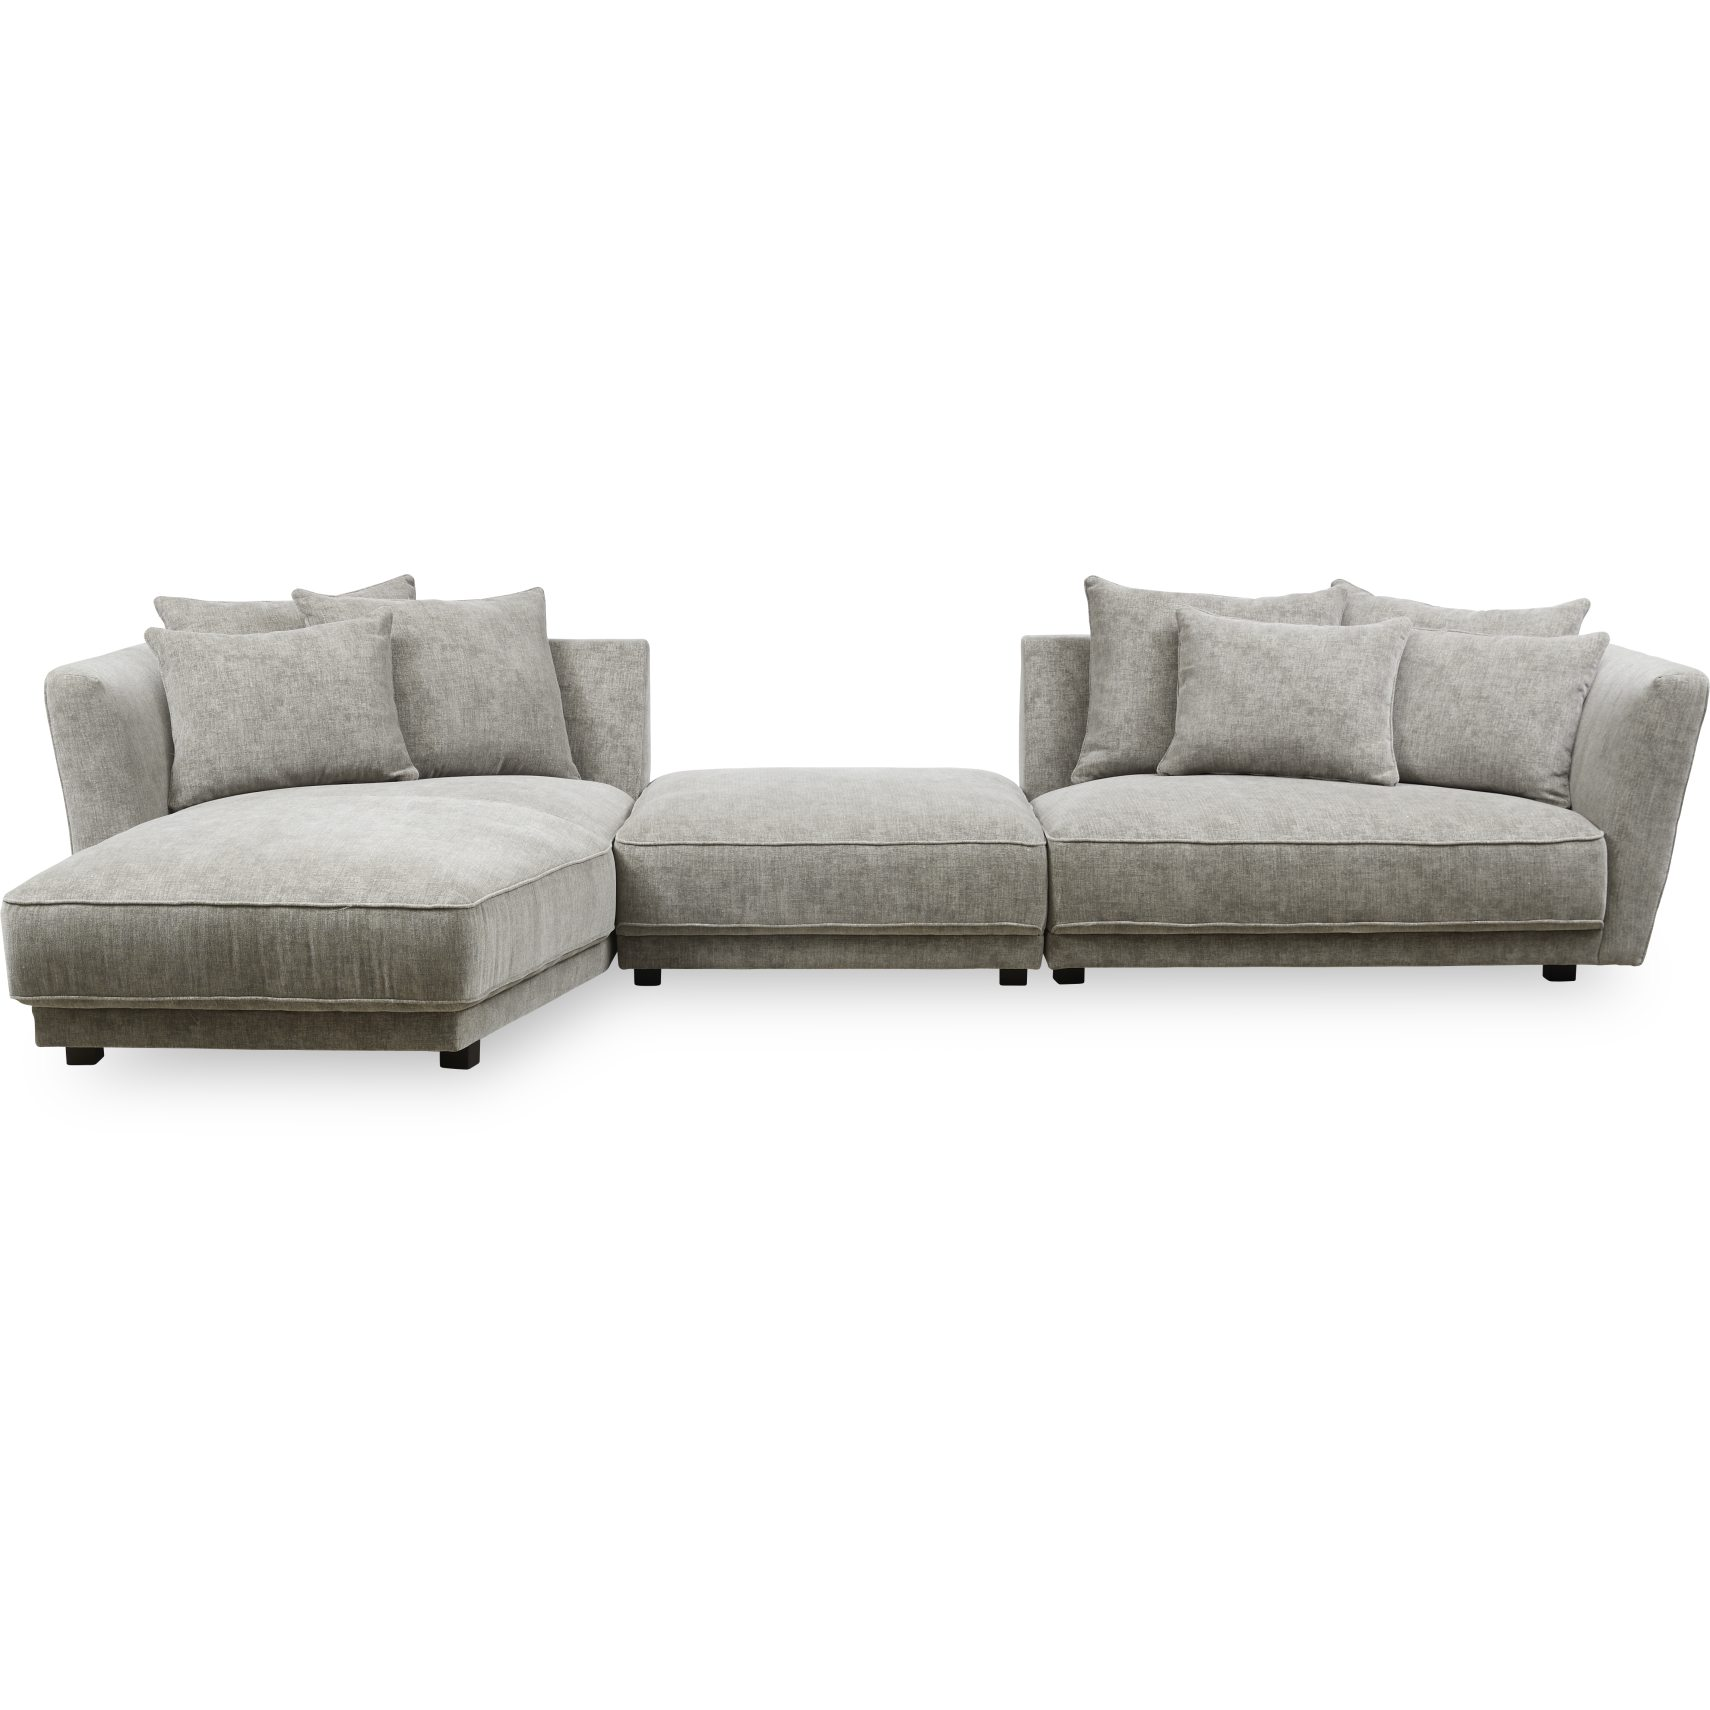 Linnett venstrevendt Sofa med chaiselong - Sofa med chaiselong